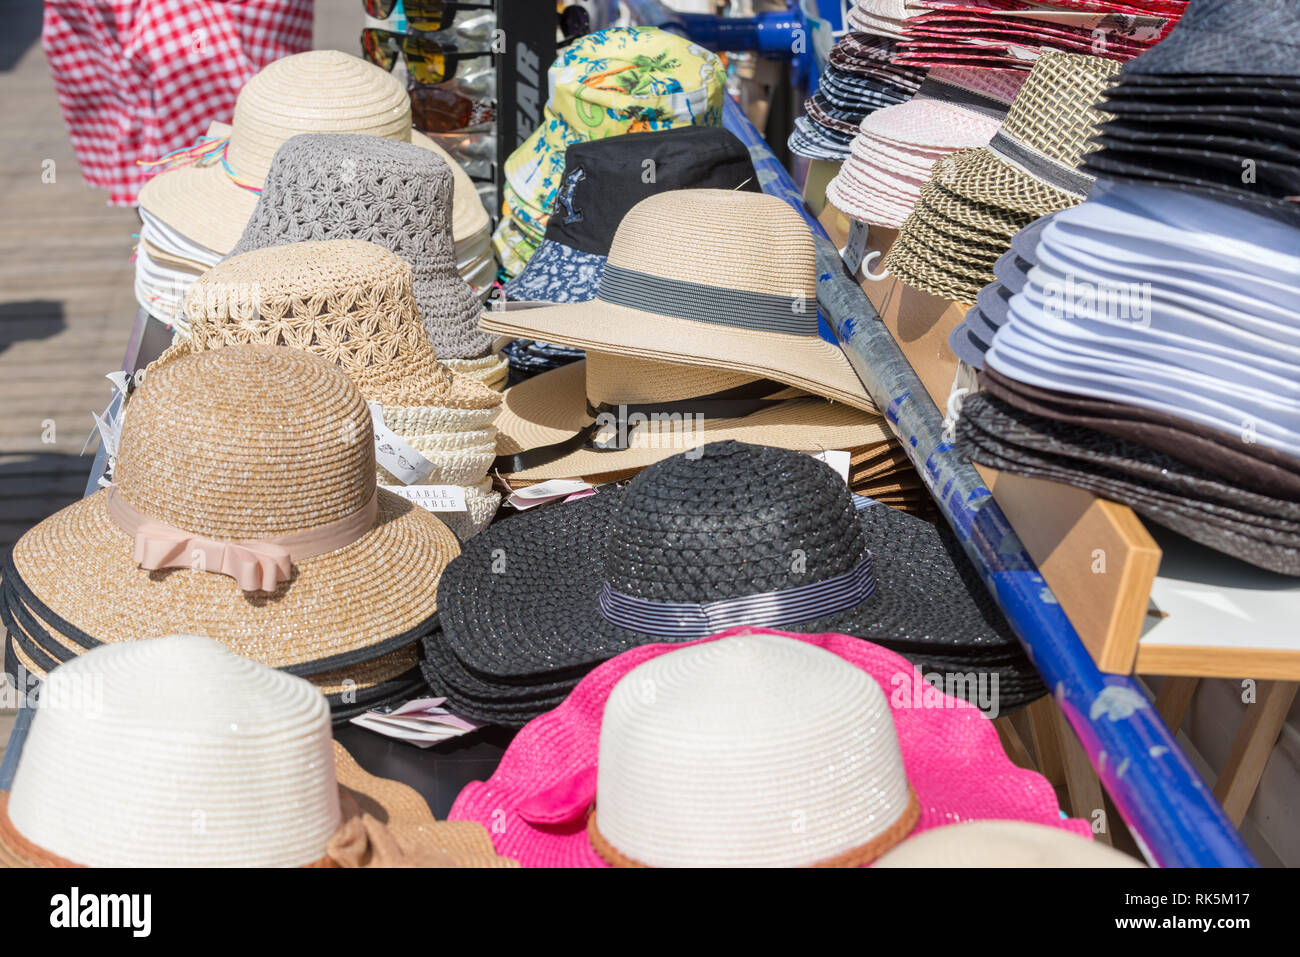 2e11f16588cef Outdoor Stand Selling Hats Stock Photos   Outdoor Stand Selling Hats ...